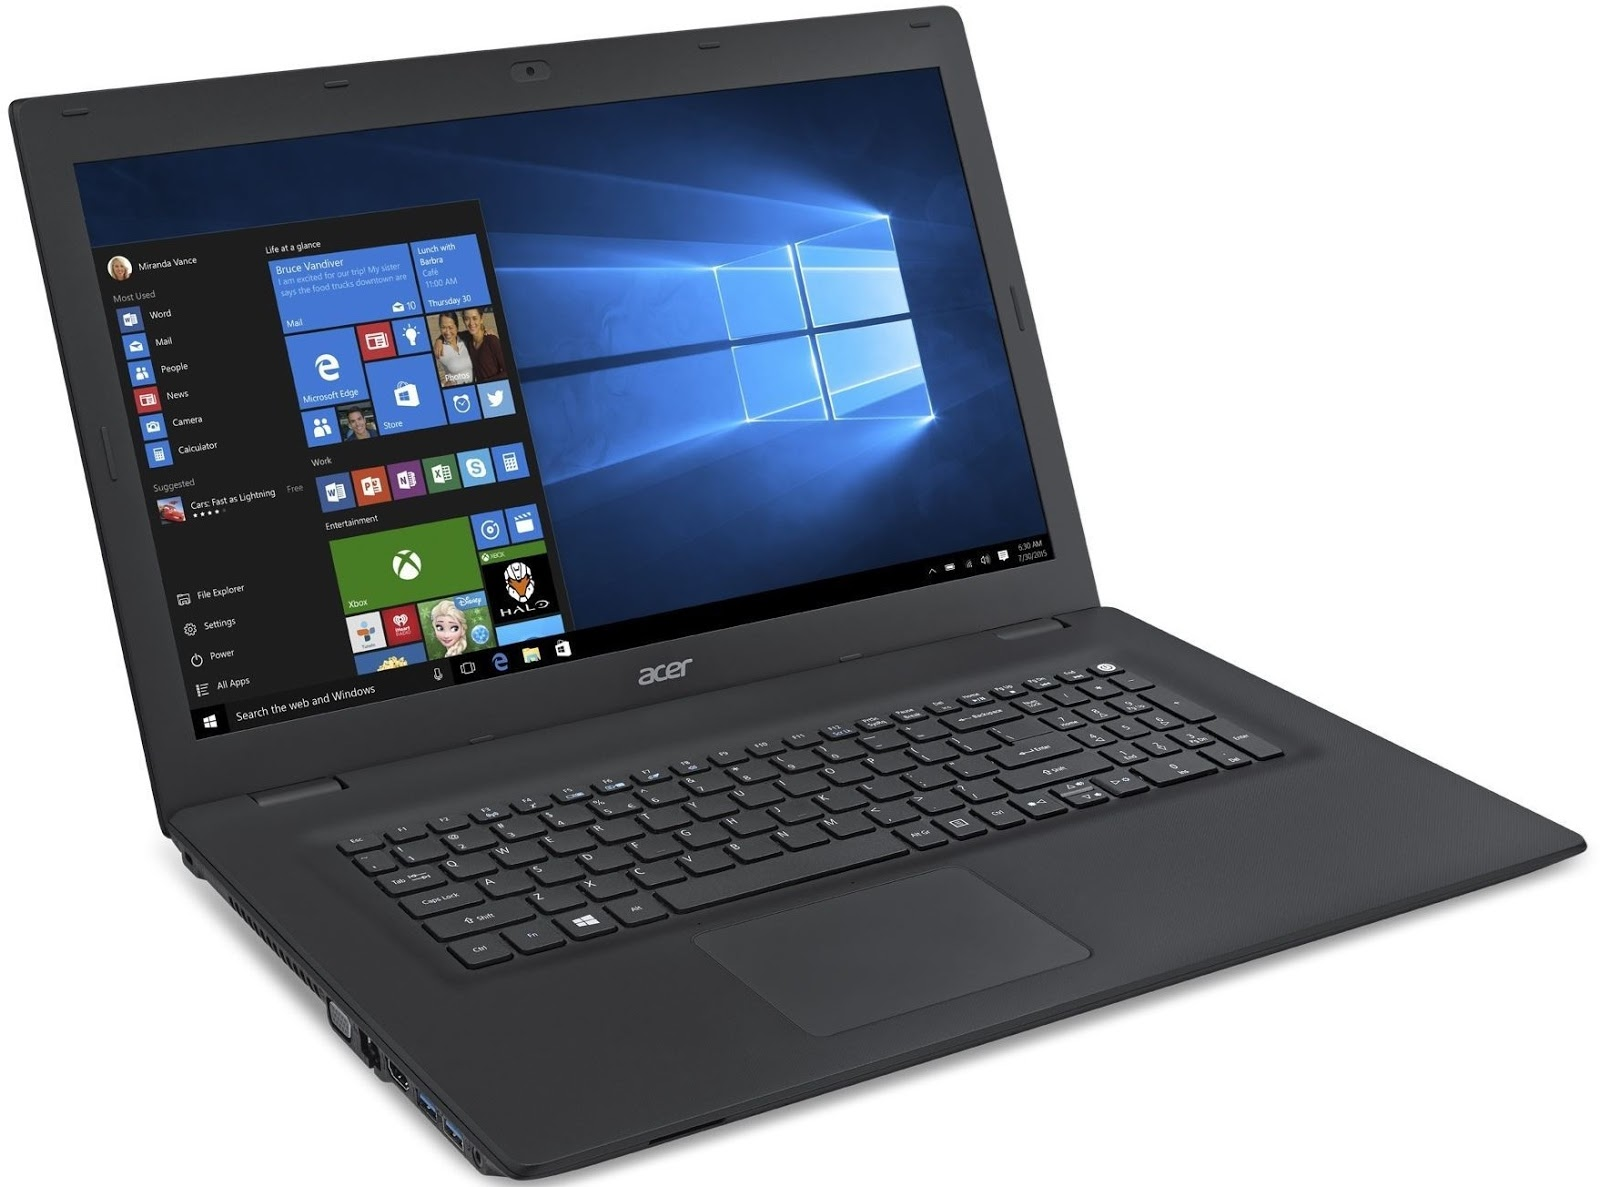 acer aspire 5750 network driver download